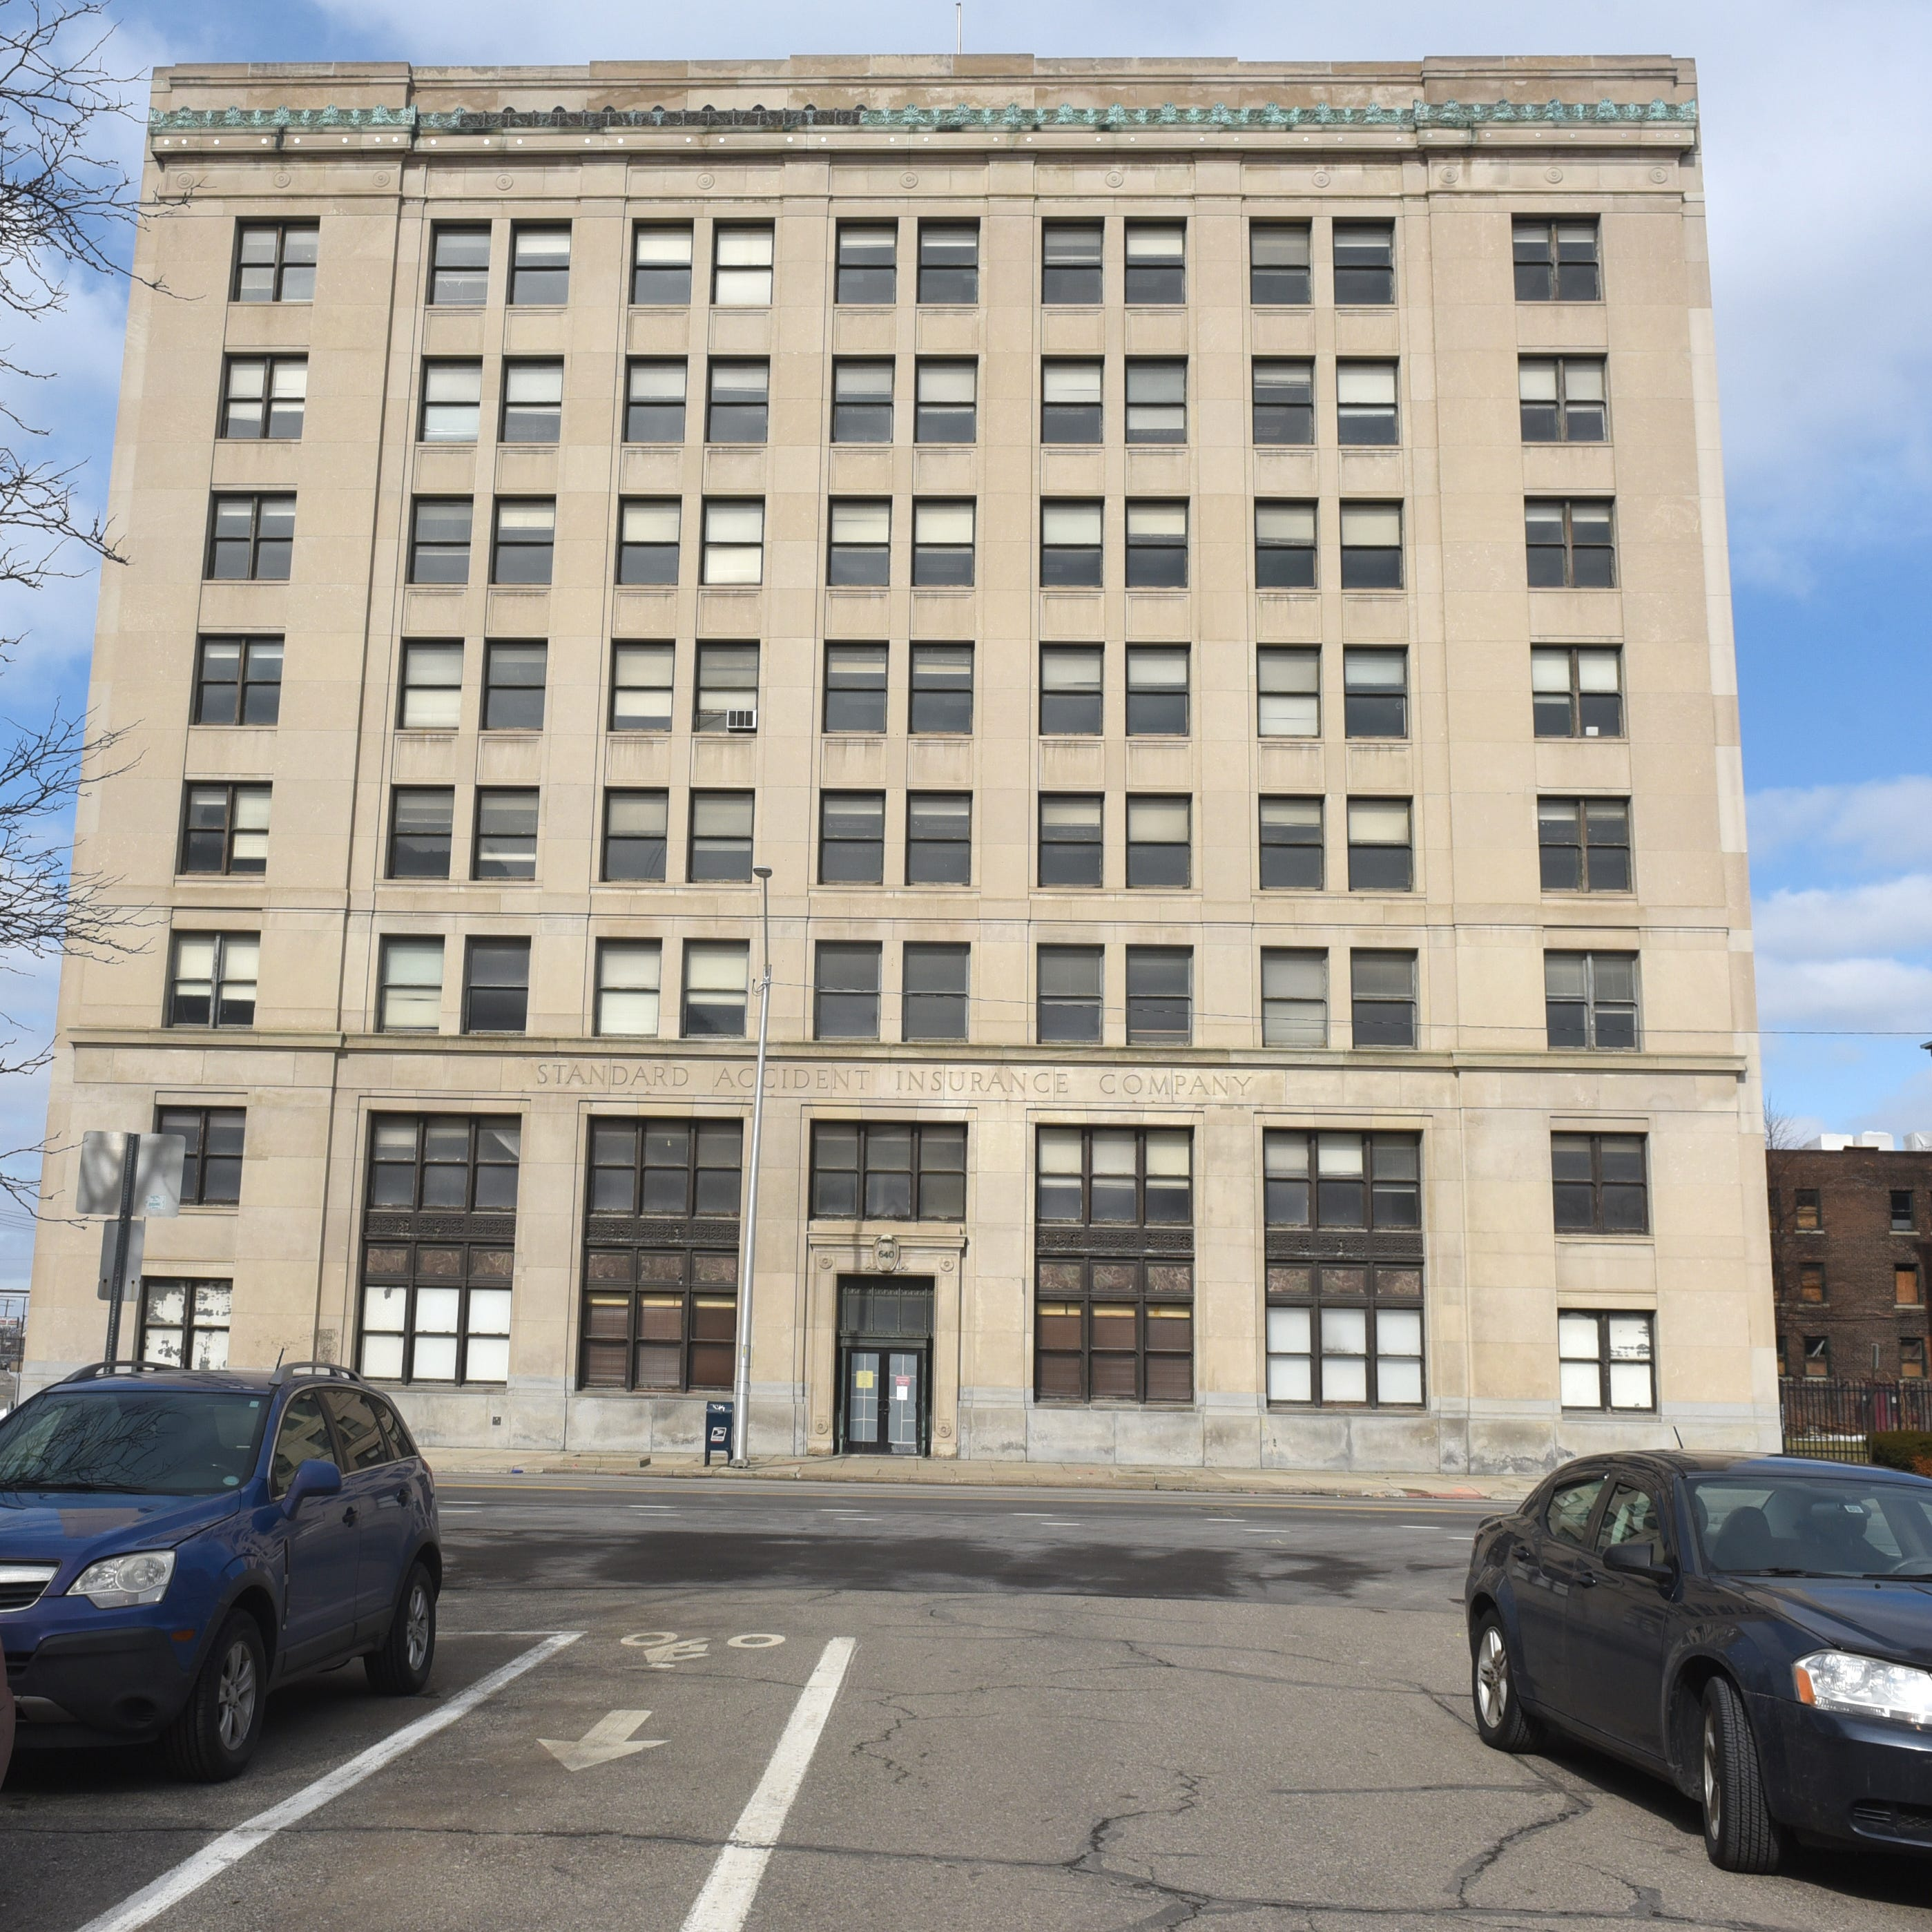 $5.7M loan, $4.9M tax incentives OK'd for Temple Street hotel project